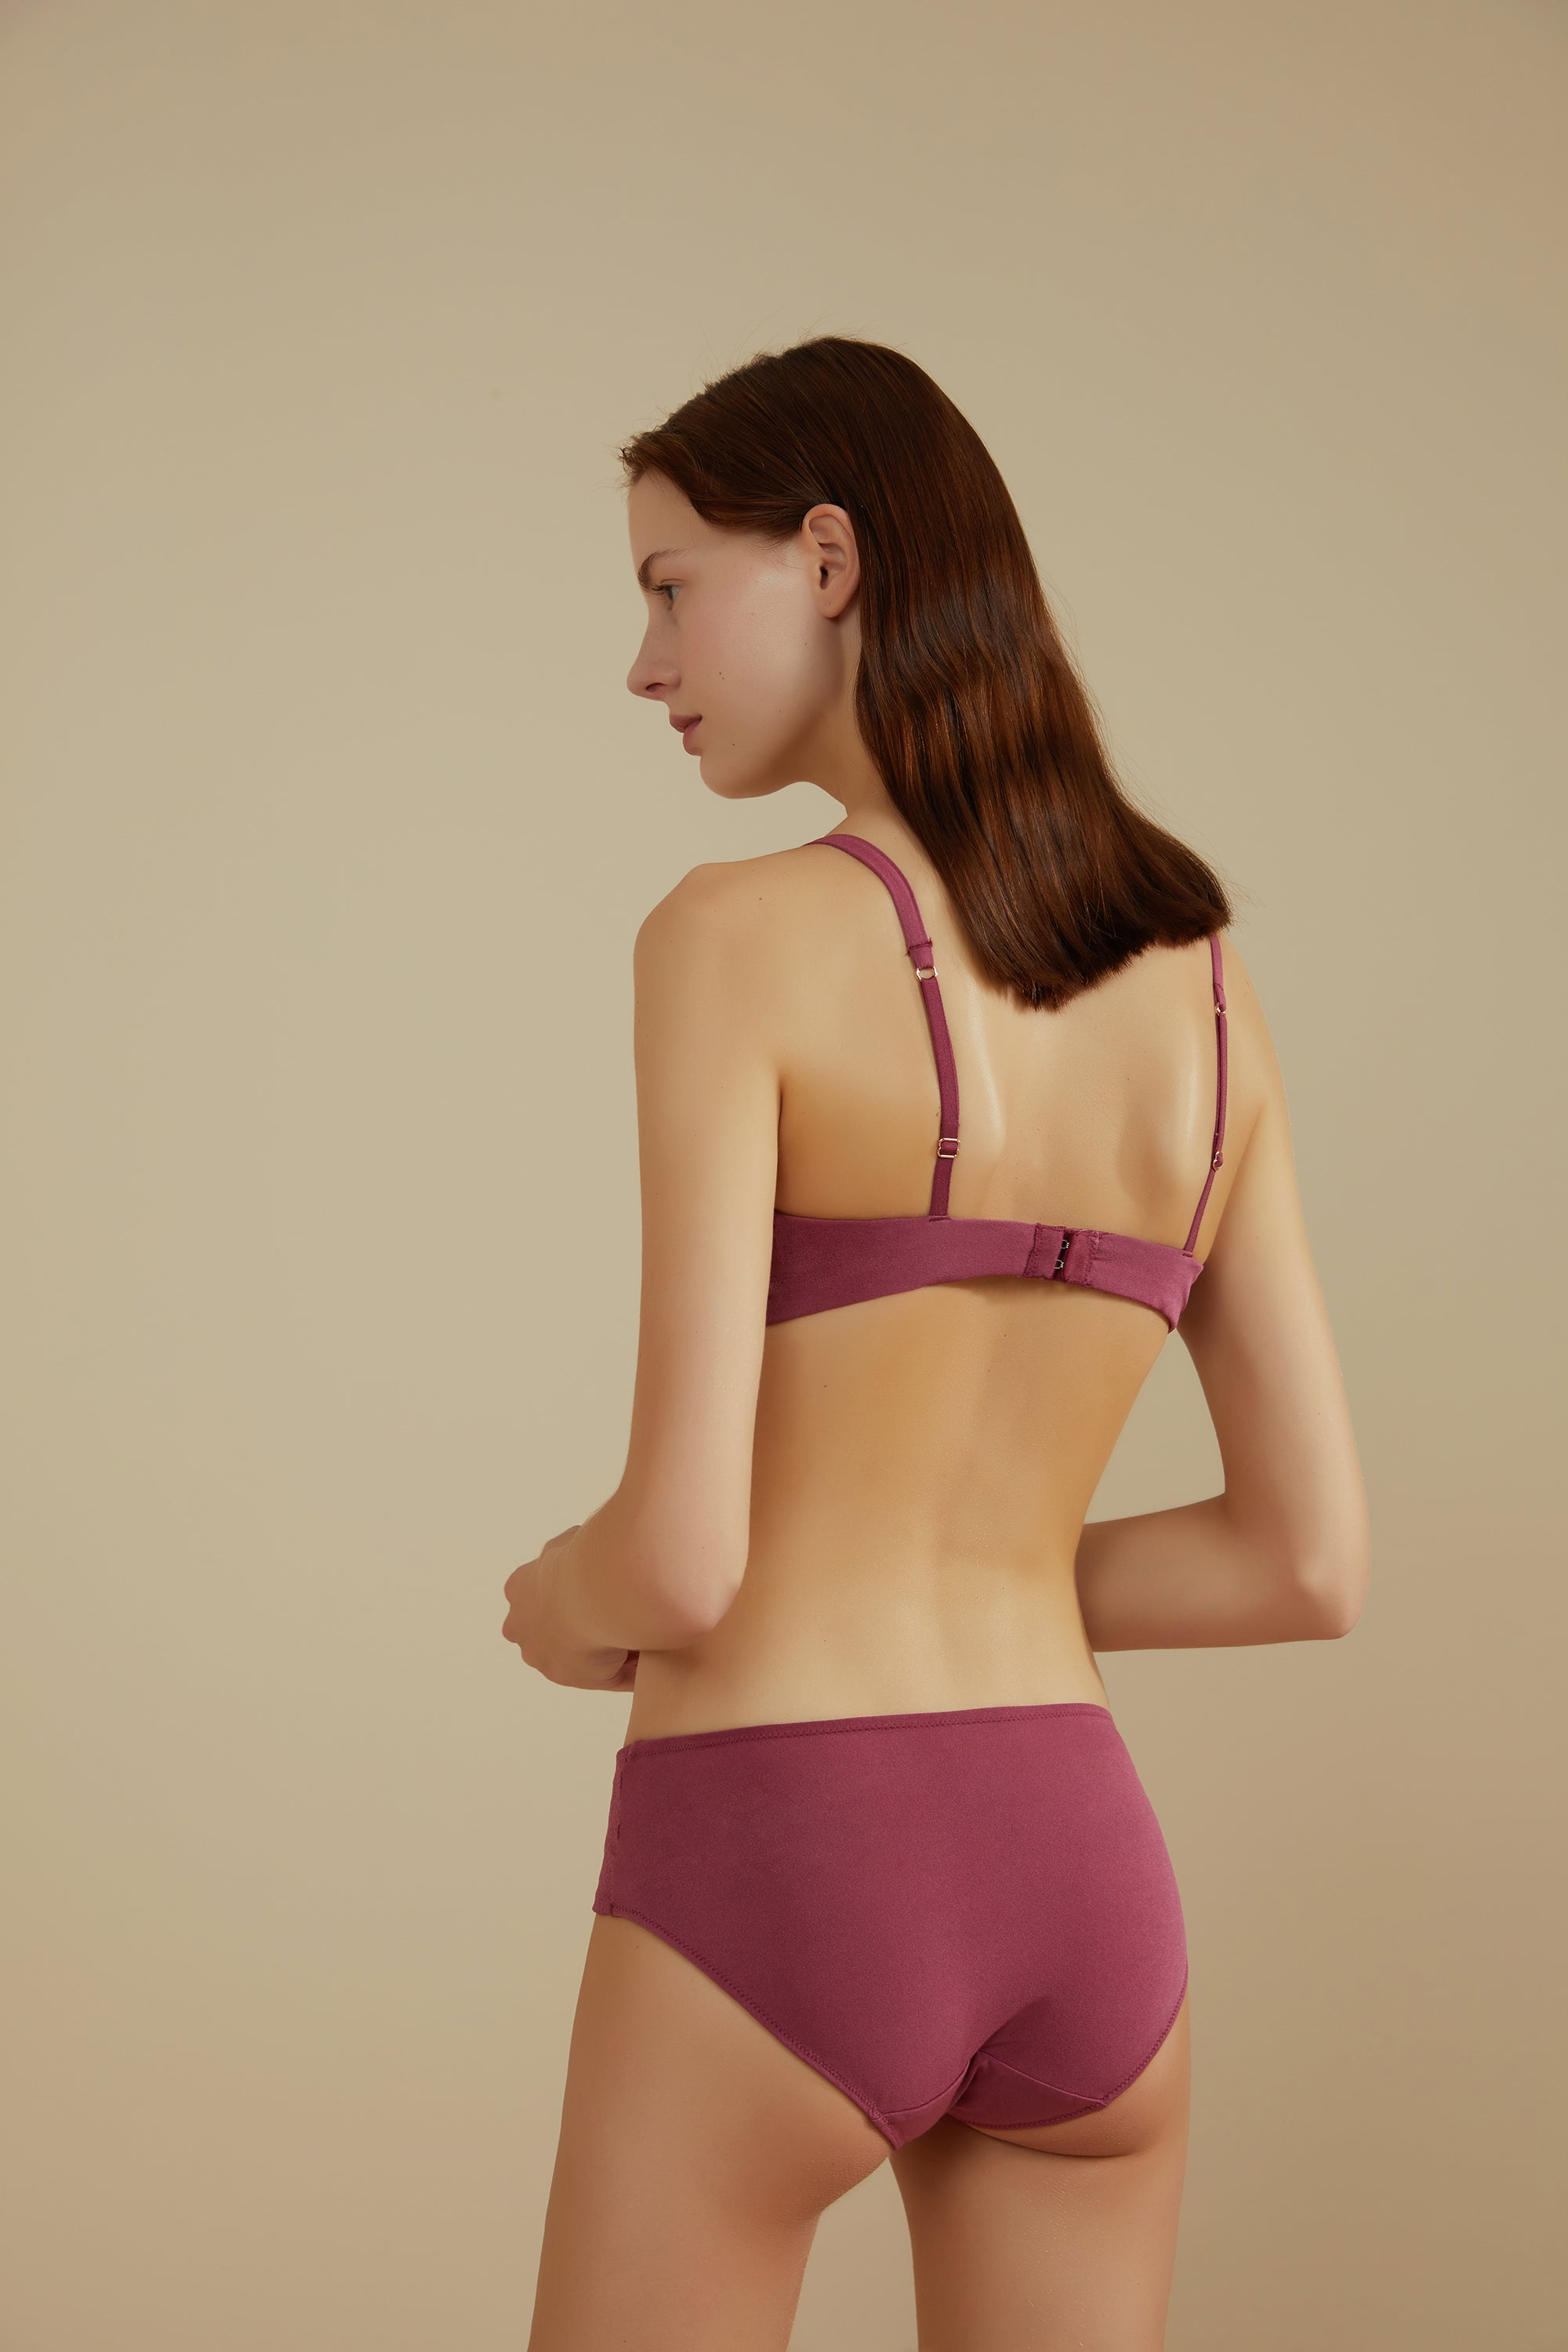 NEIWAI Leavers Lace Triangle Bra in Amaranth. Adjustable Straps and Band